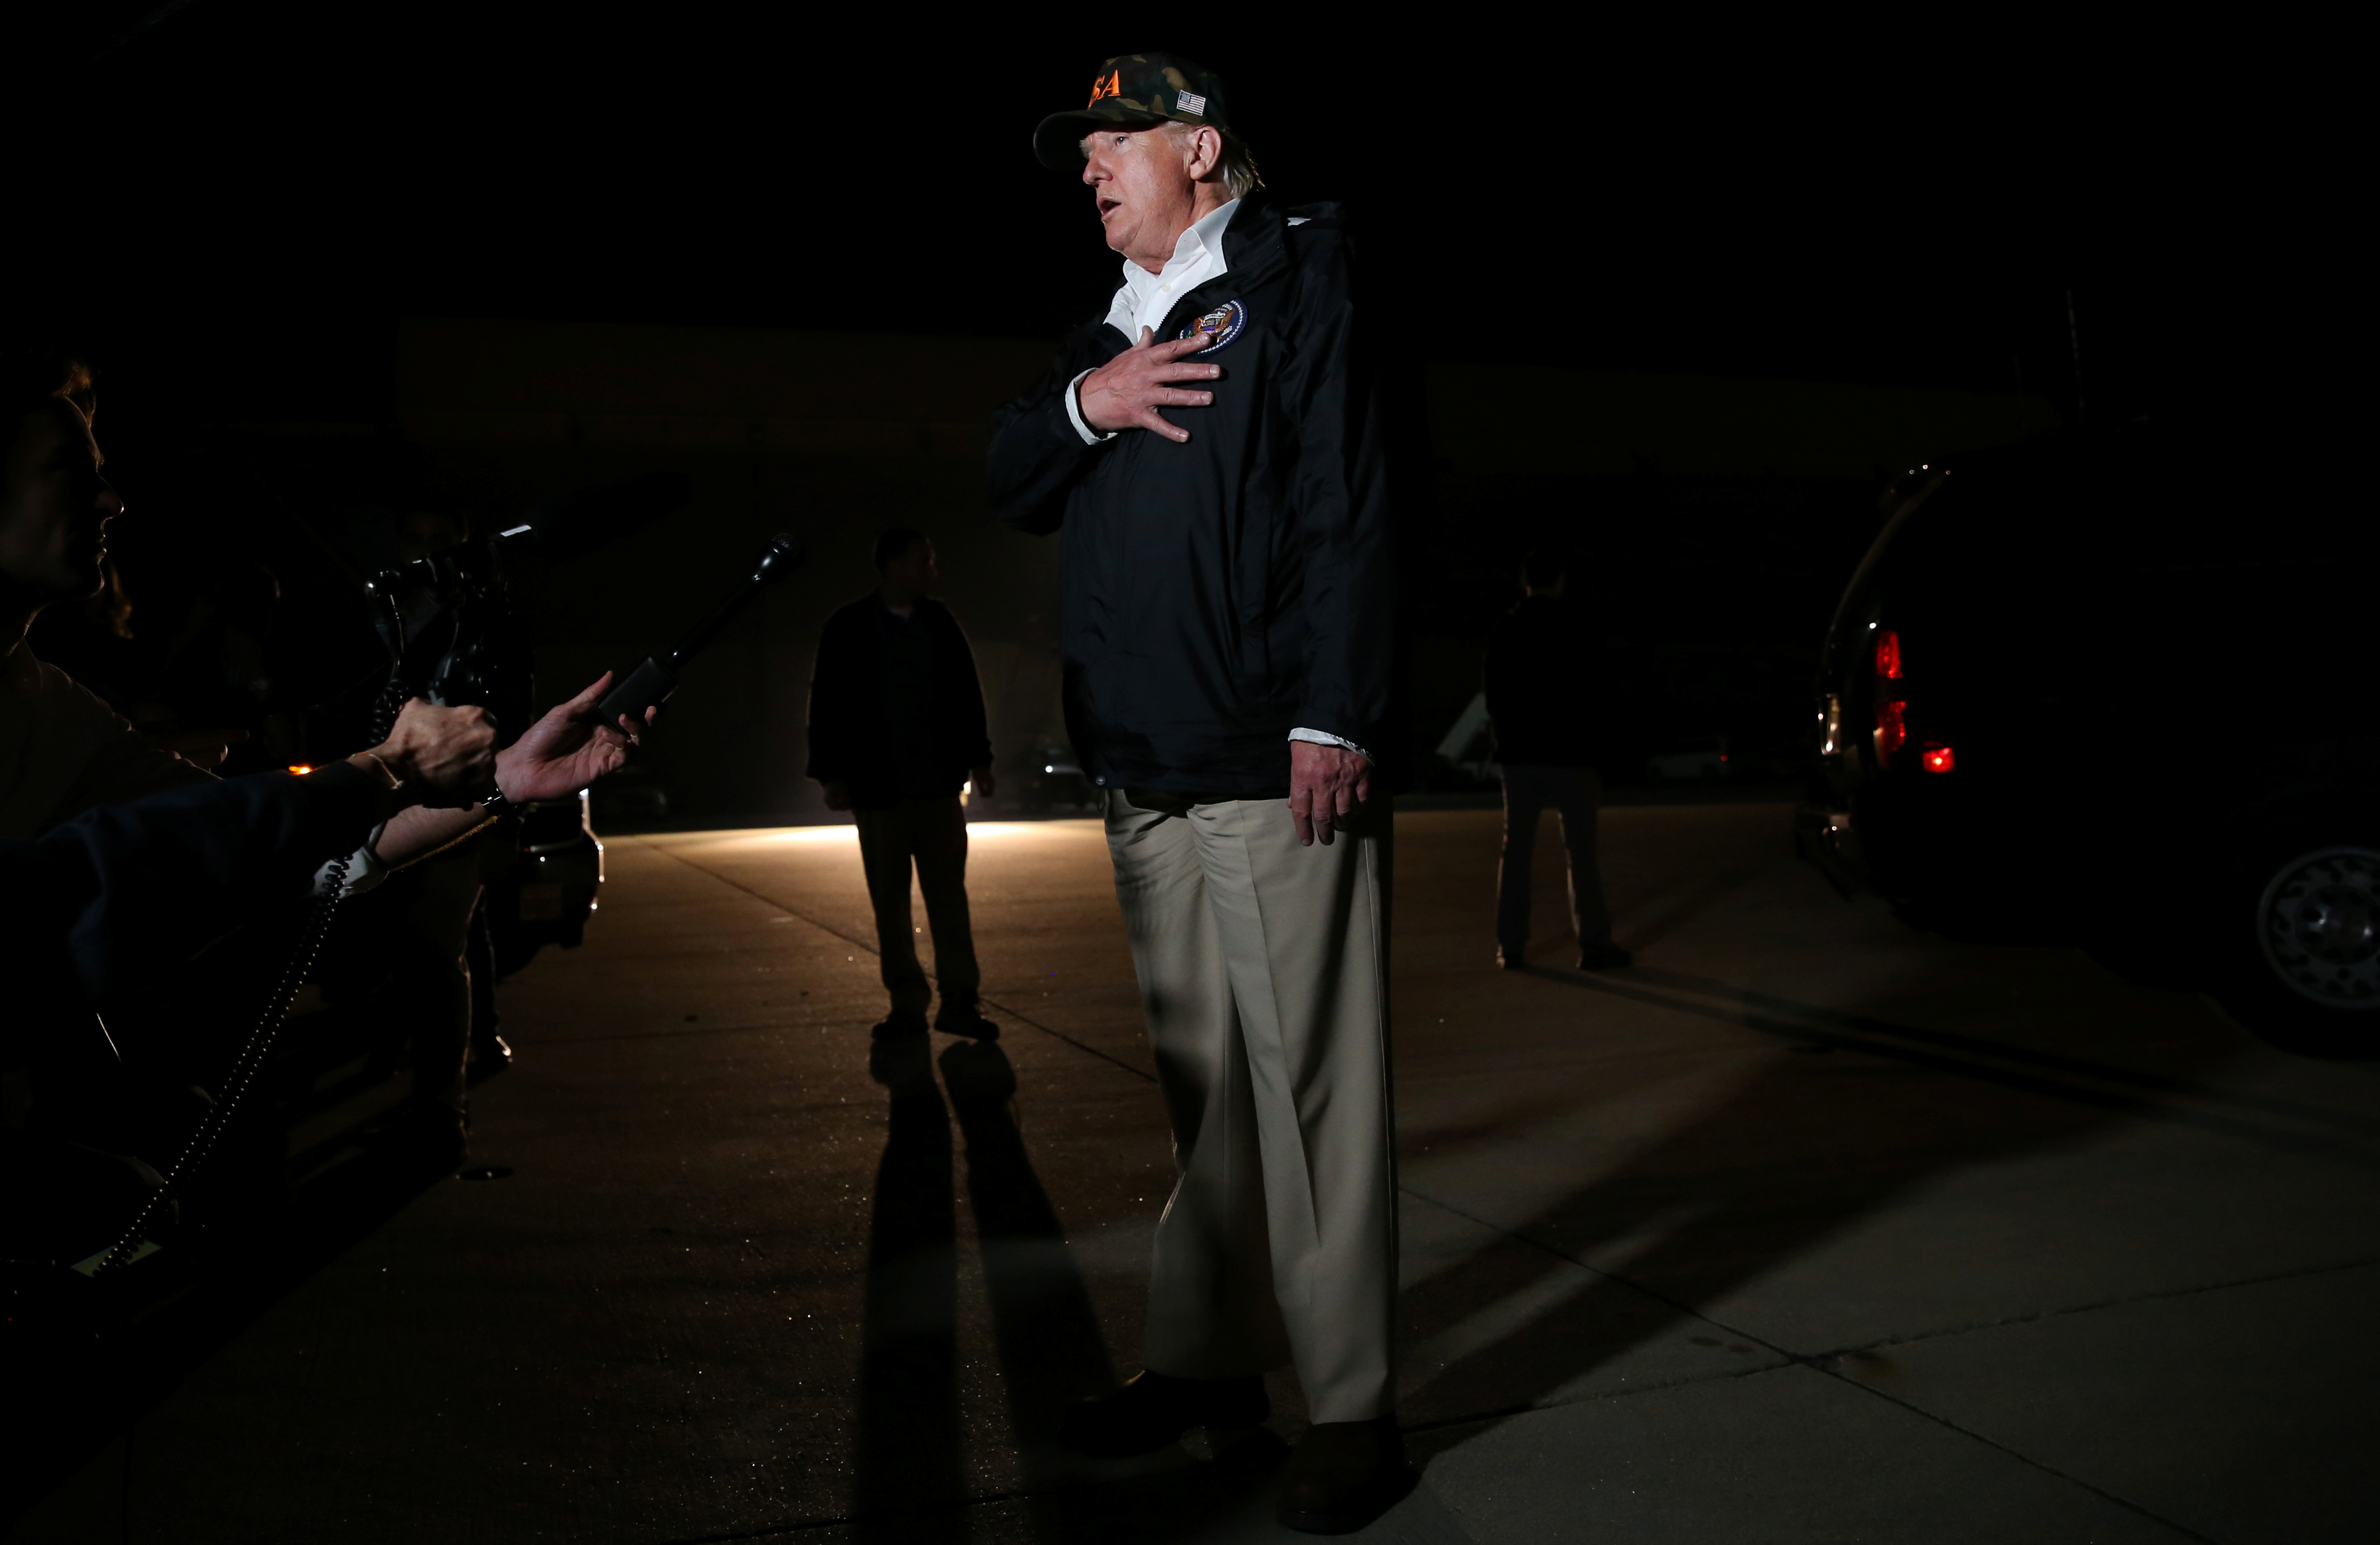 U.S. President Donald Trump speaks to the media after a day of touring neighborhoods devastated by the wildfires and meeting with families and friends of the victims of the Thousand Oaks shooting, at Naval Air Station Point Mugu near Malibu, California, U.S., November 17, 2018. REUTERS/ Leah Millis